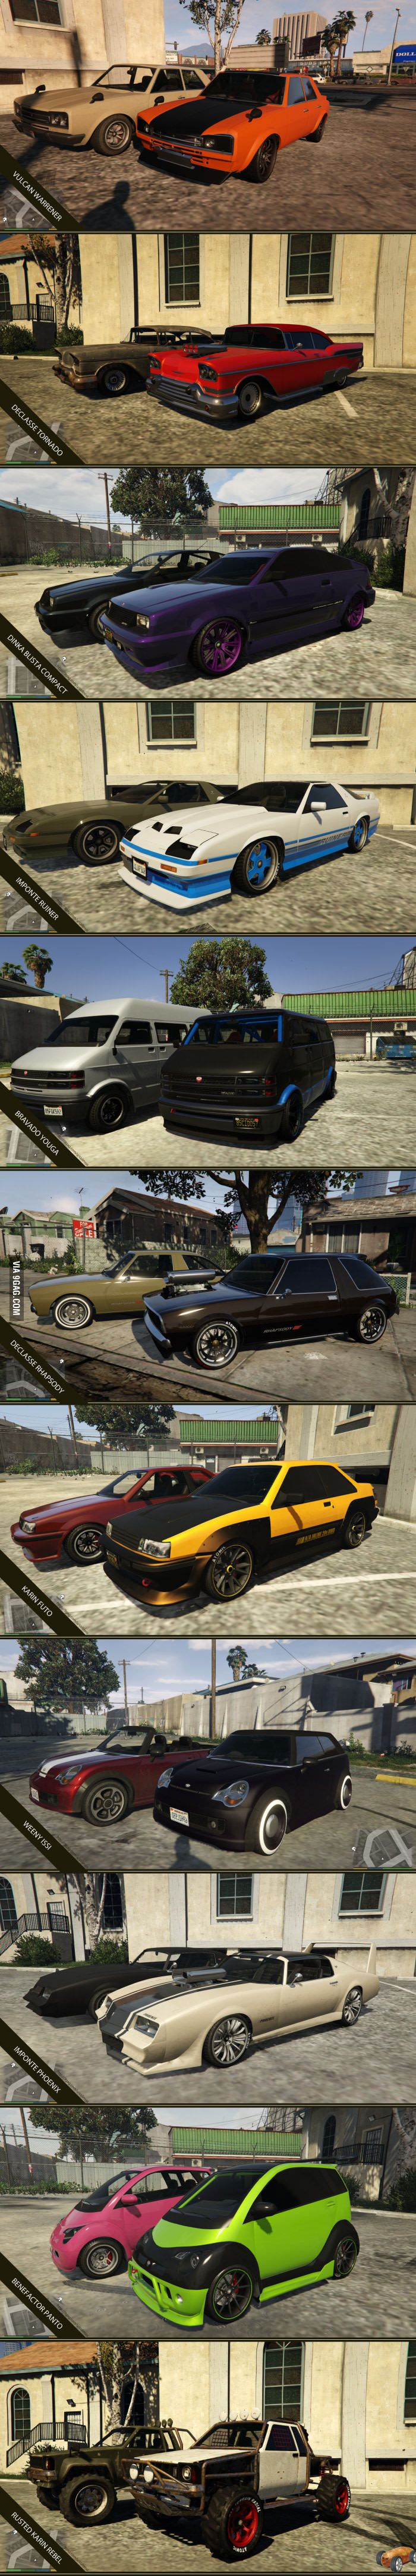 These GTA V cars tend to be neglected by the players, I gave them some attention!